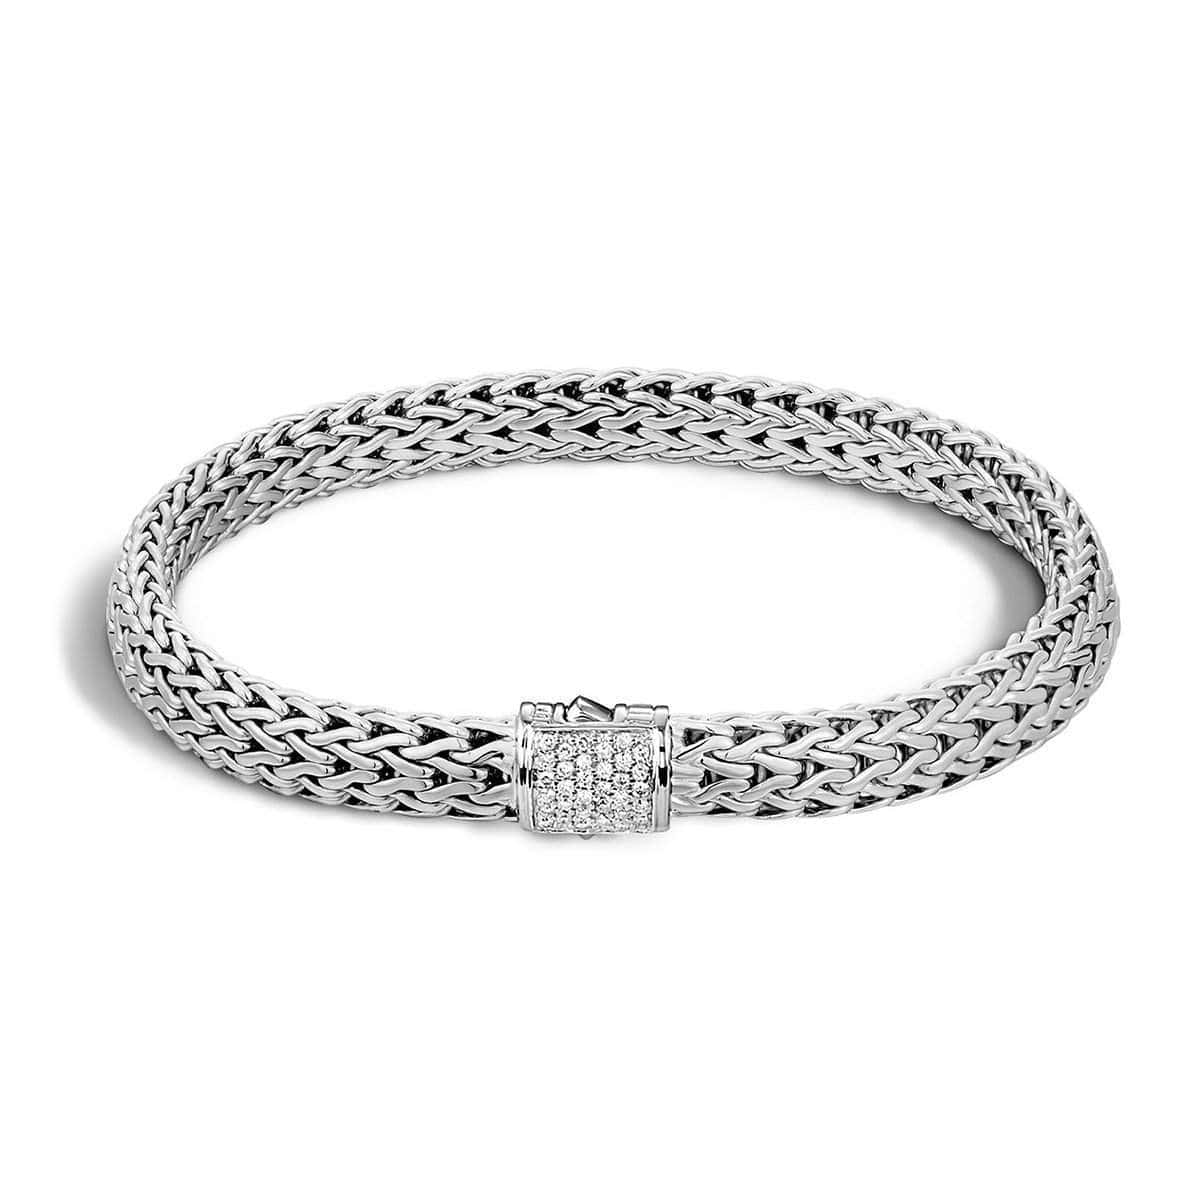 Classic Chain Bracelet with 0.16 ct Diamonds - BBP9042DI-John Hardy-Renee Taylor Gallery